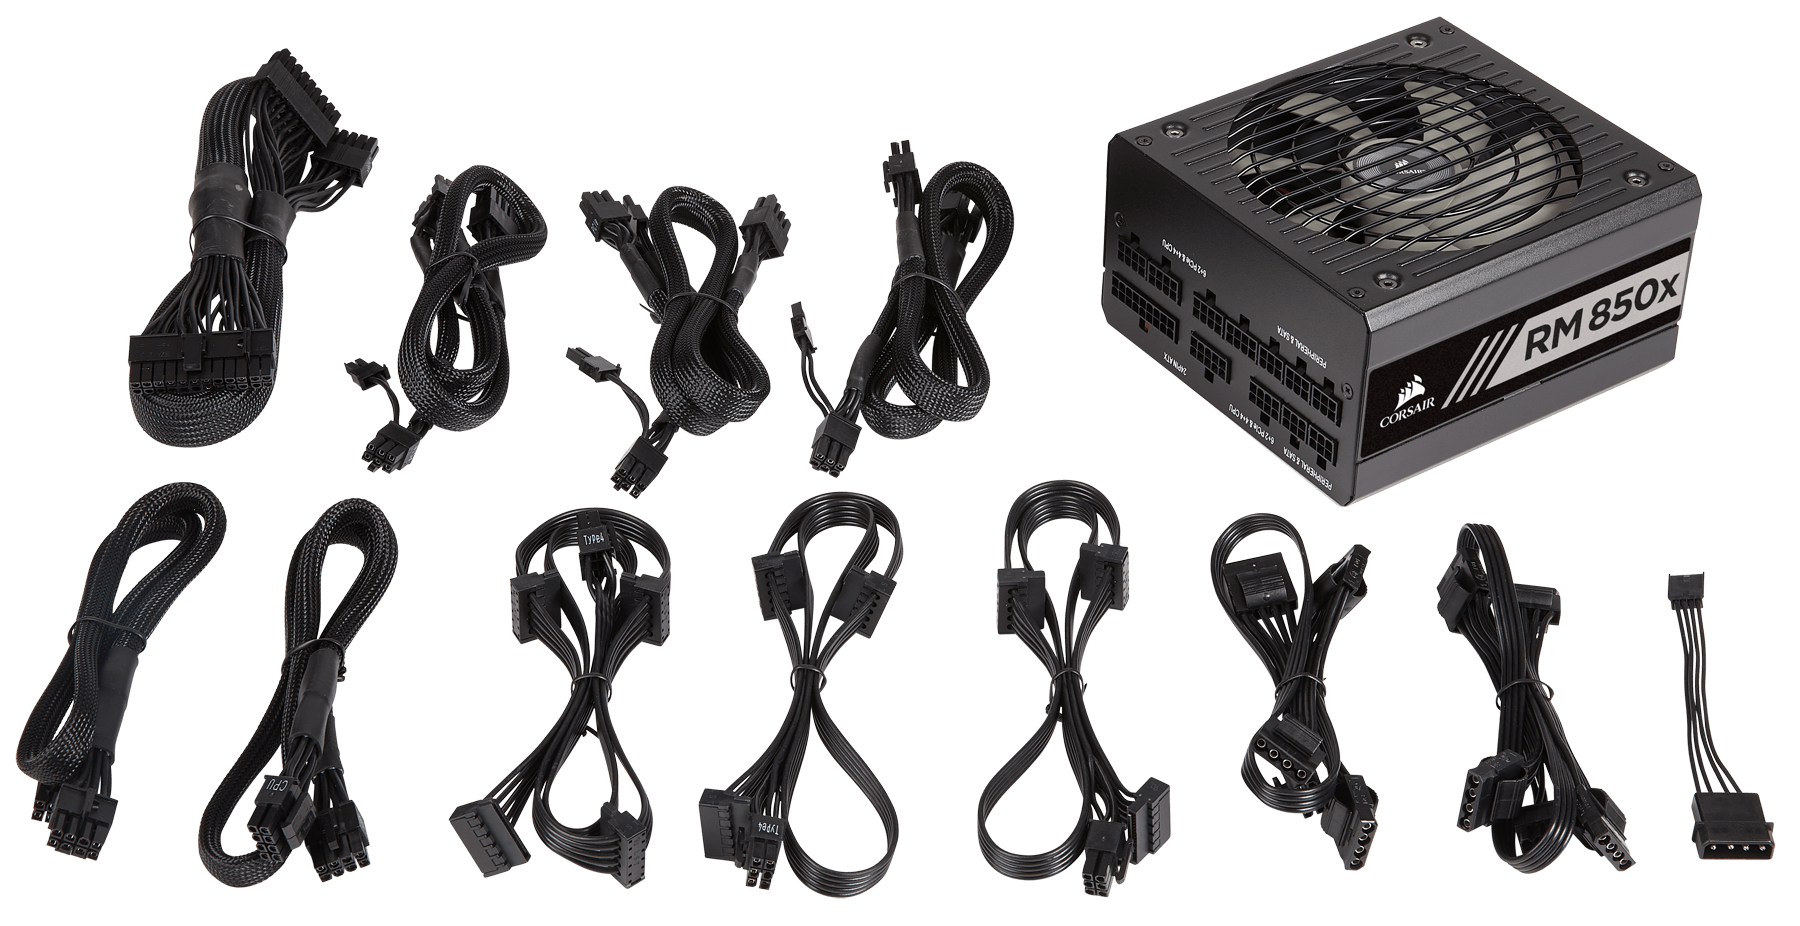 Modular cables help in easy and clean building of the Corsair RM850x PSU.